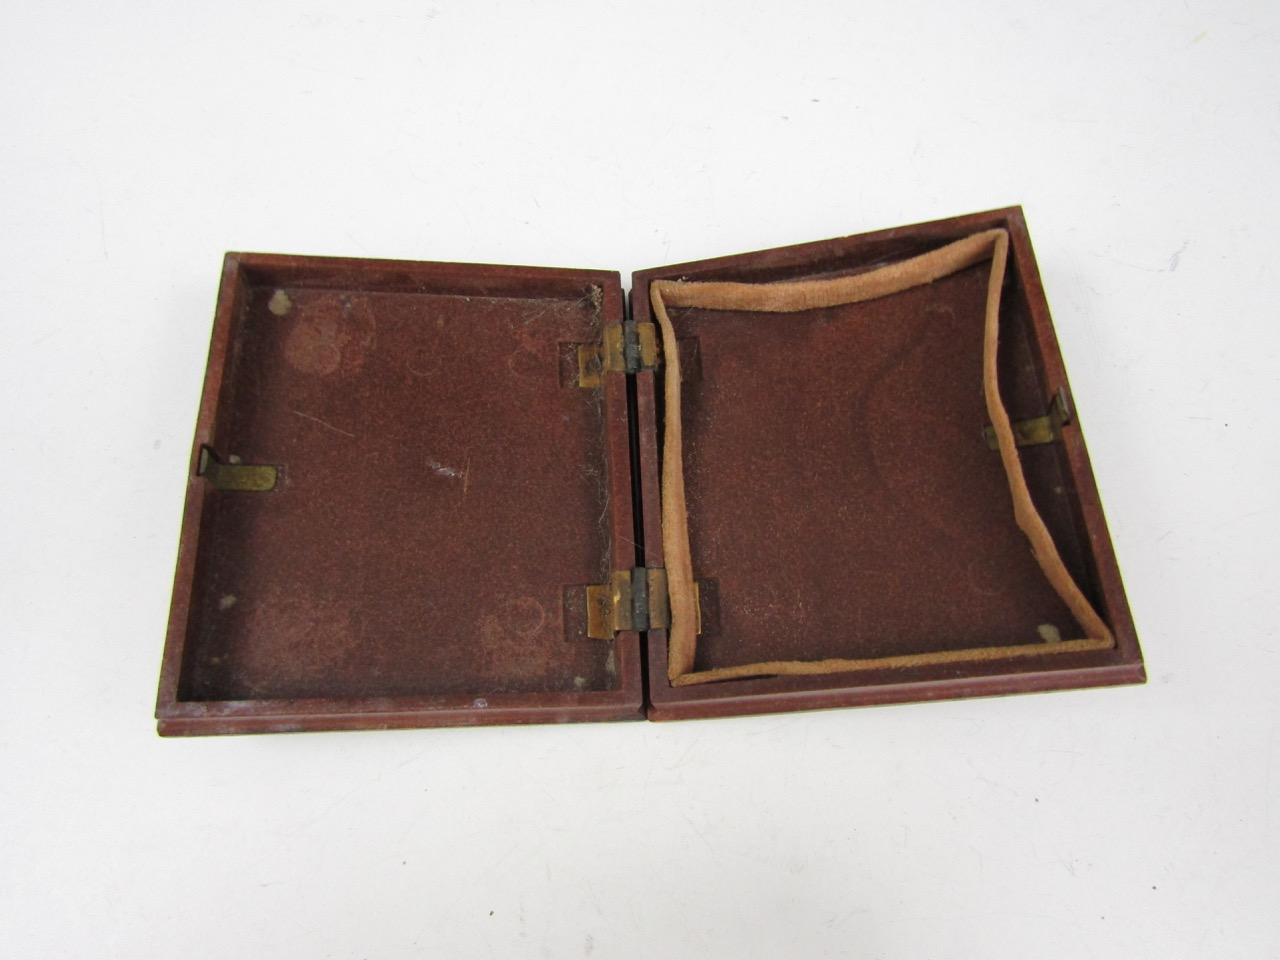 Lot 51 - A Union type daguerreotype photo case